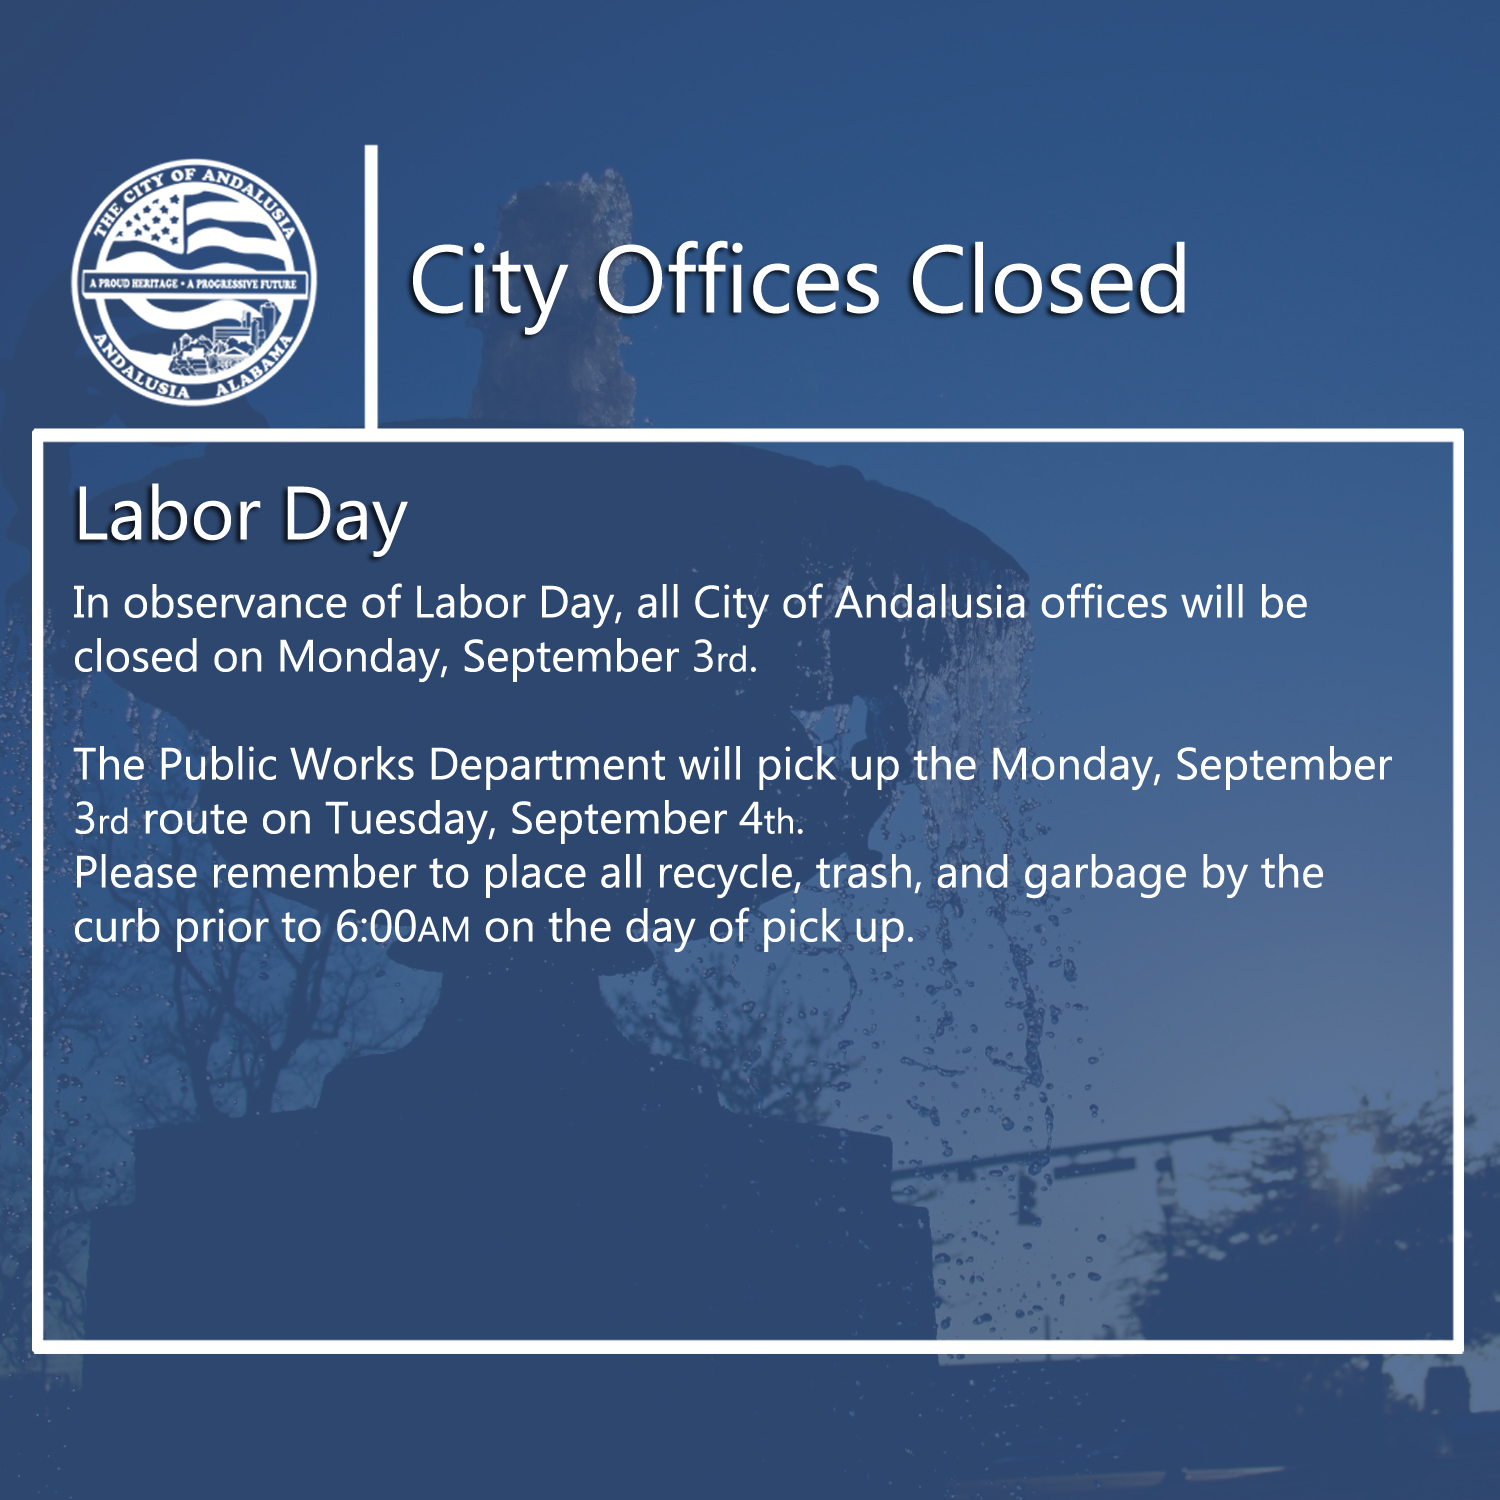 Facebook City Offices Closed Labor Day